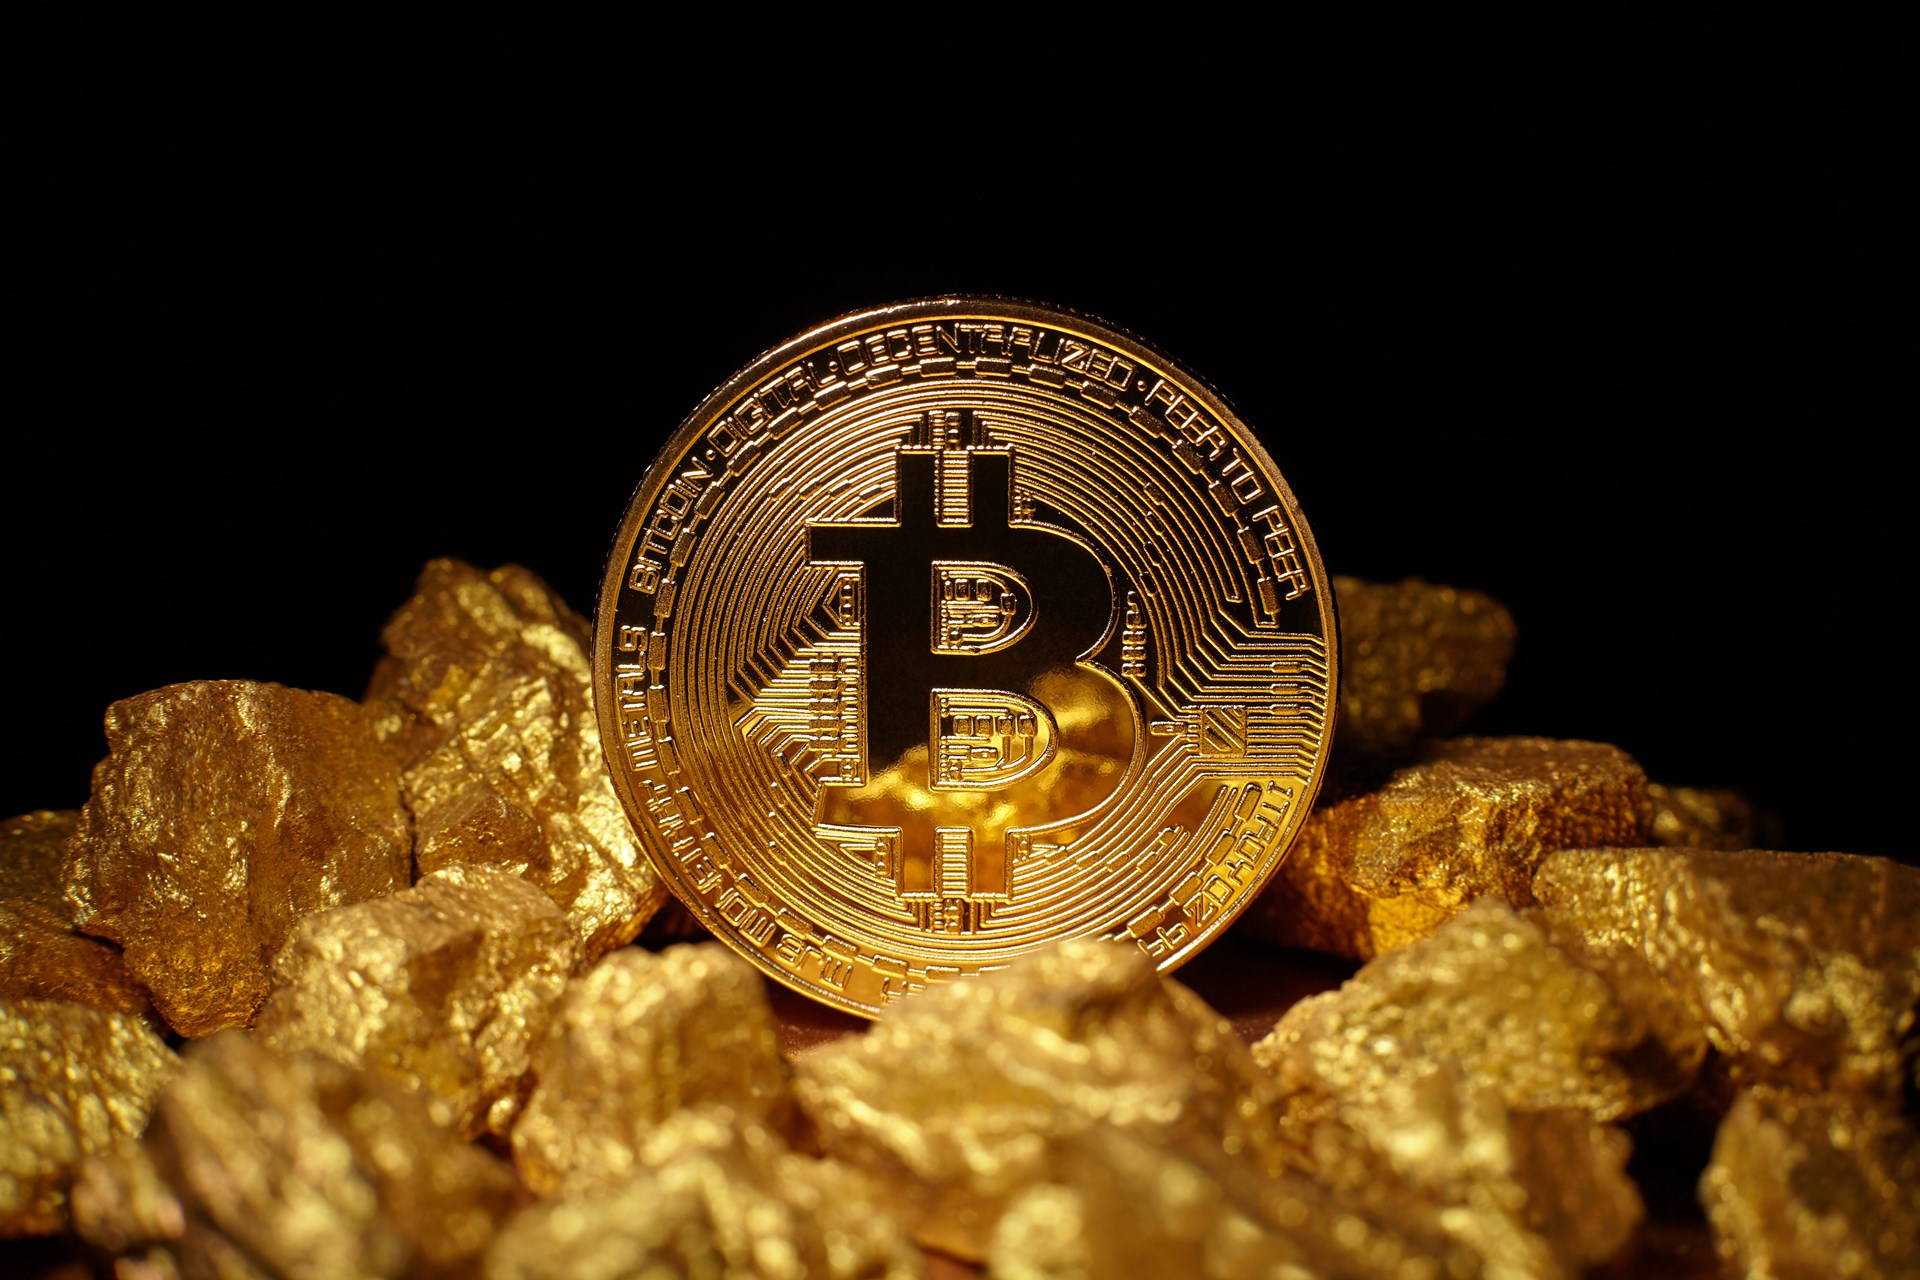 Institutional investors dump Bitcoin for gold, JPMorgan analysts say